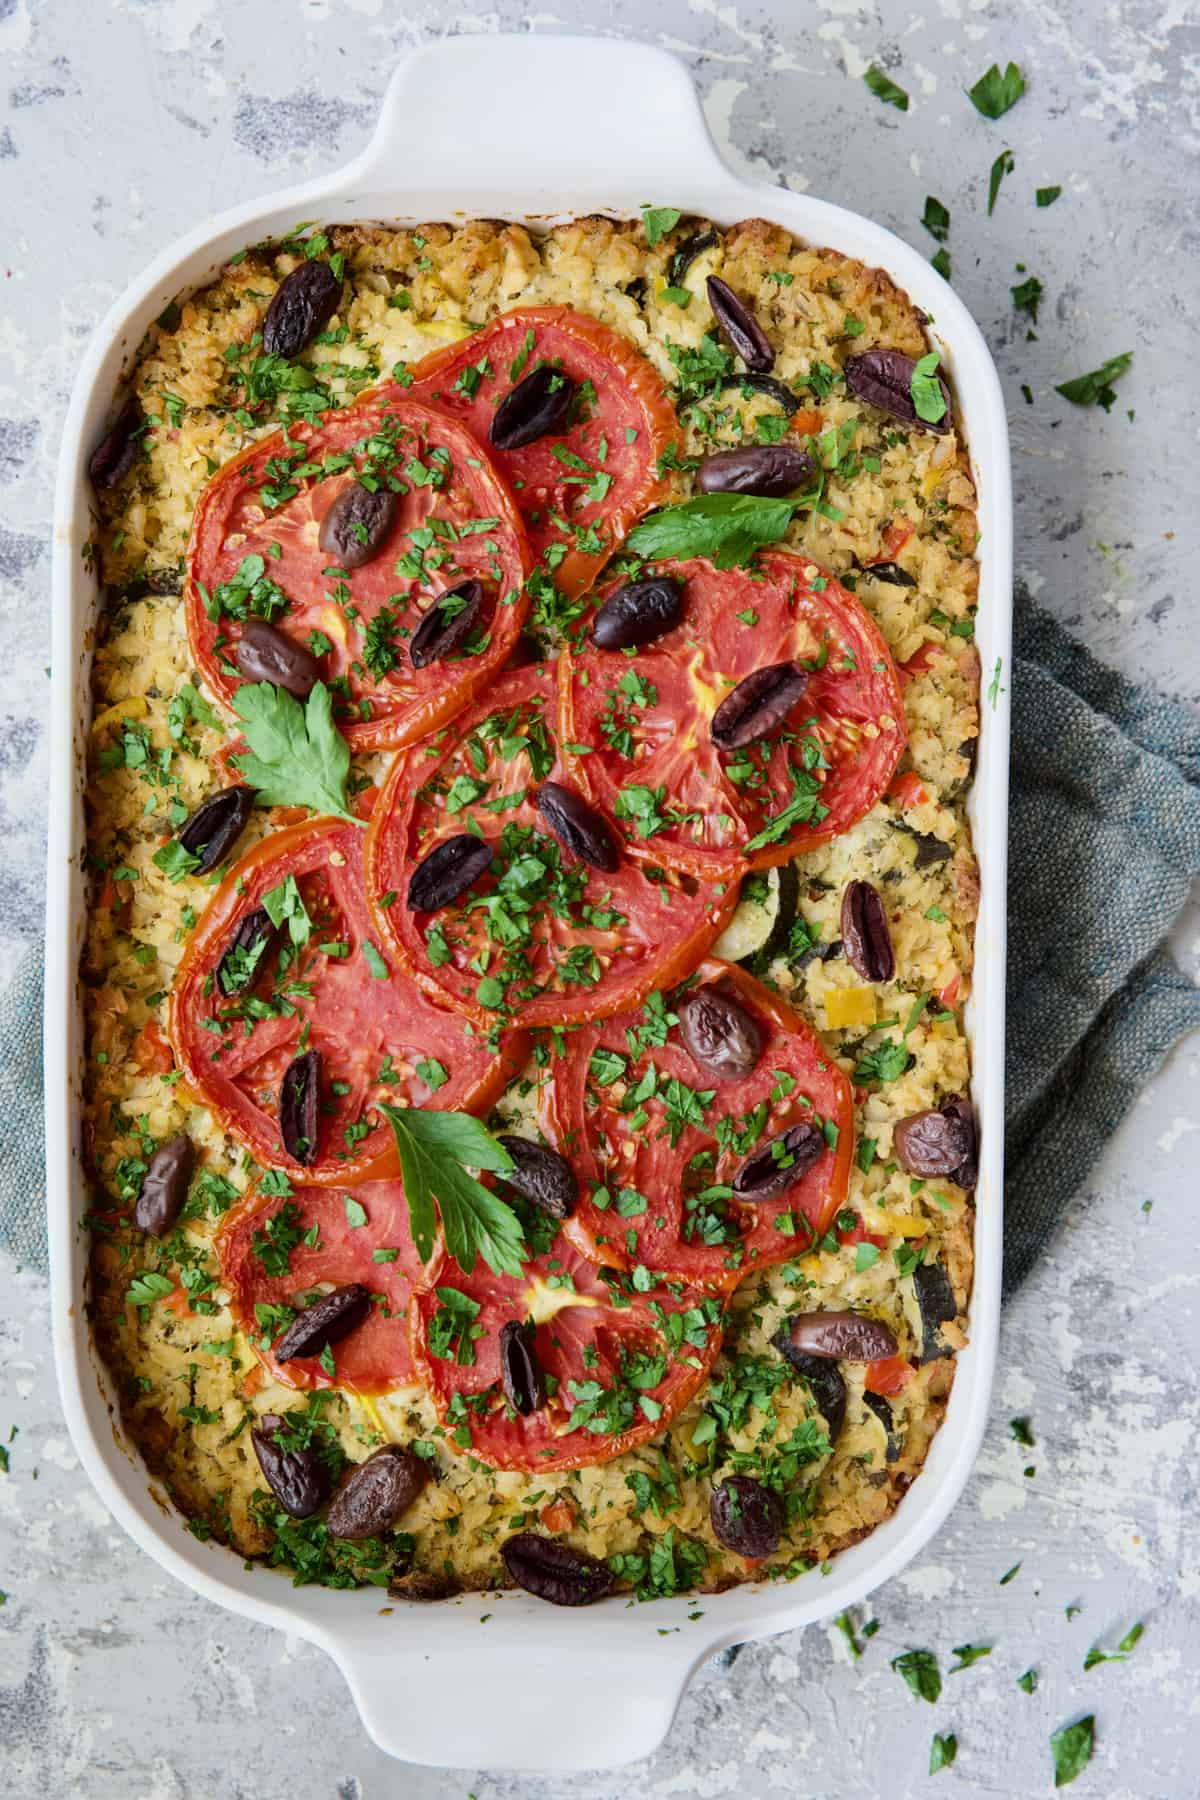 Greek Brown Rice and Vegetable Casserole in white baking dish garnished with fresh parsley.